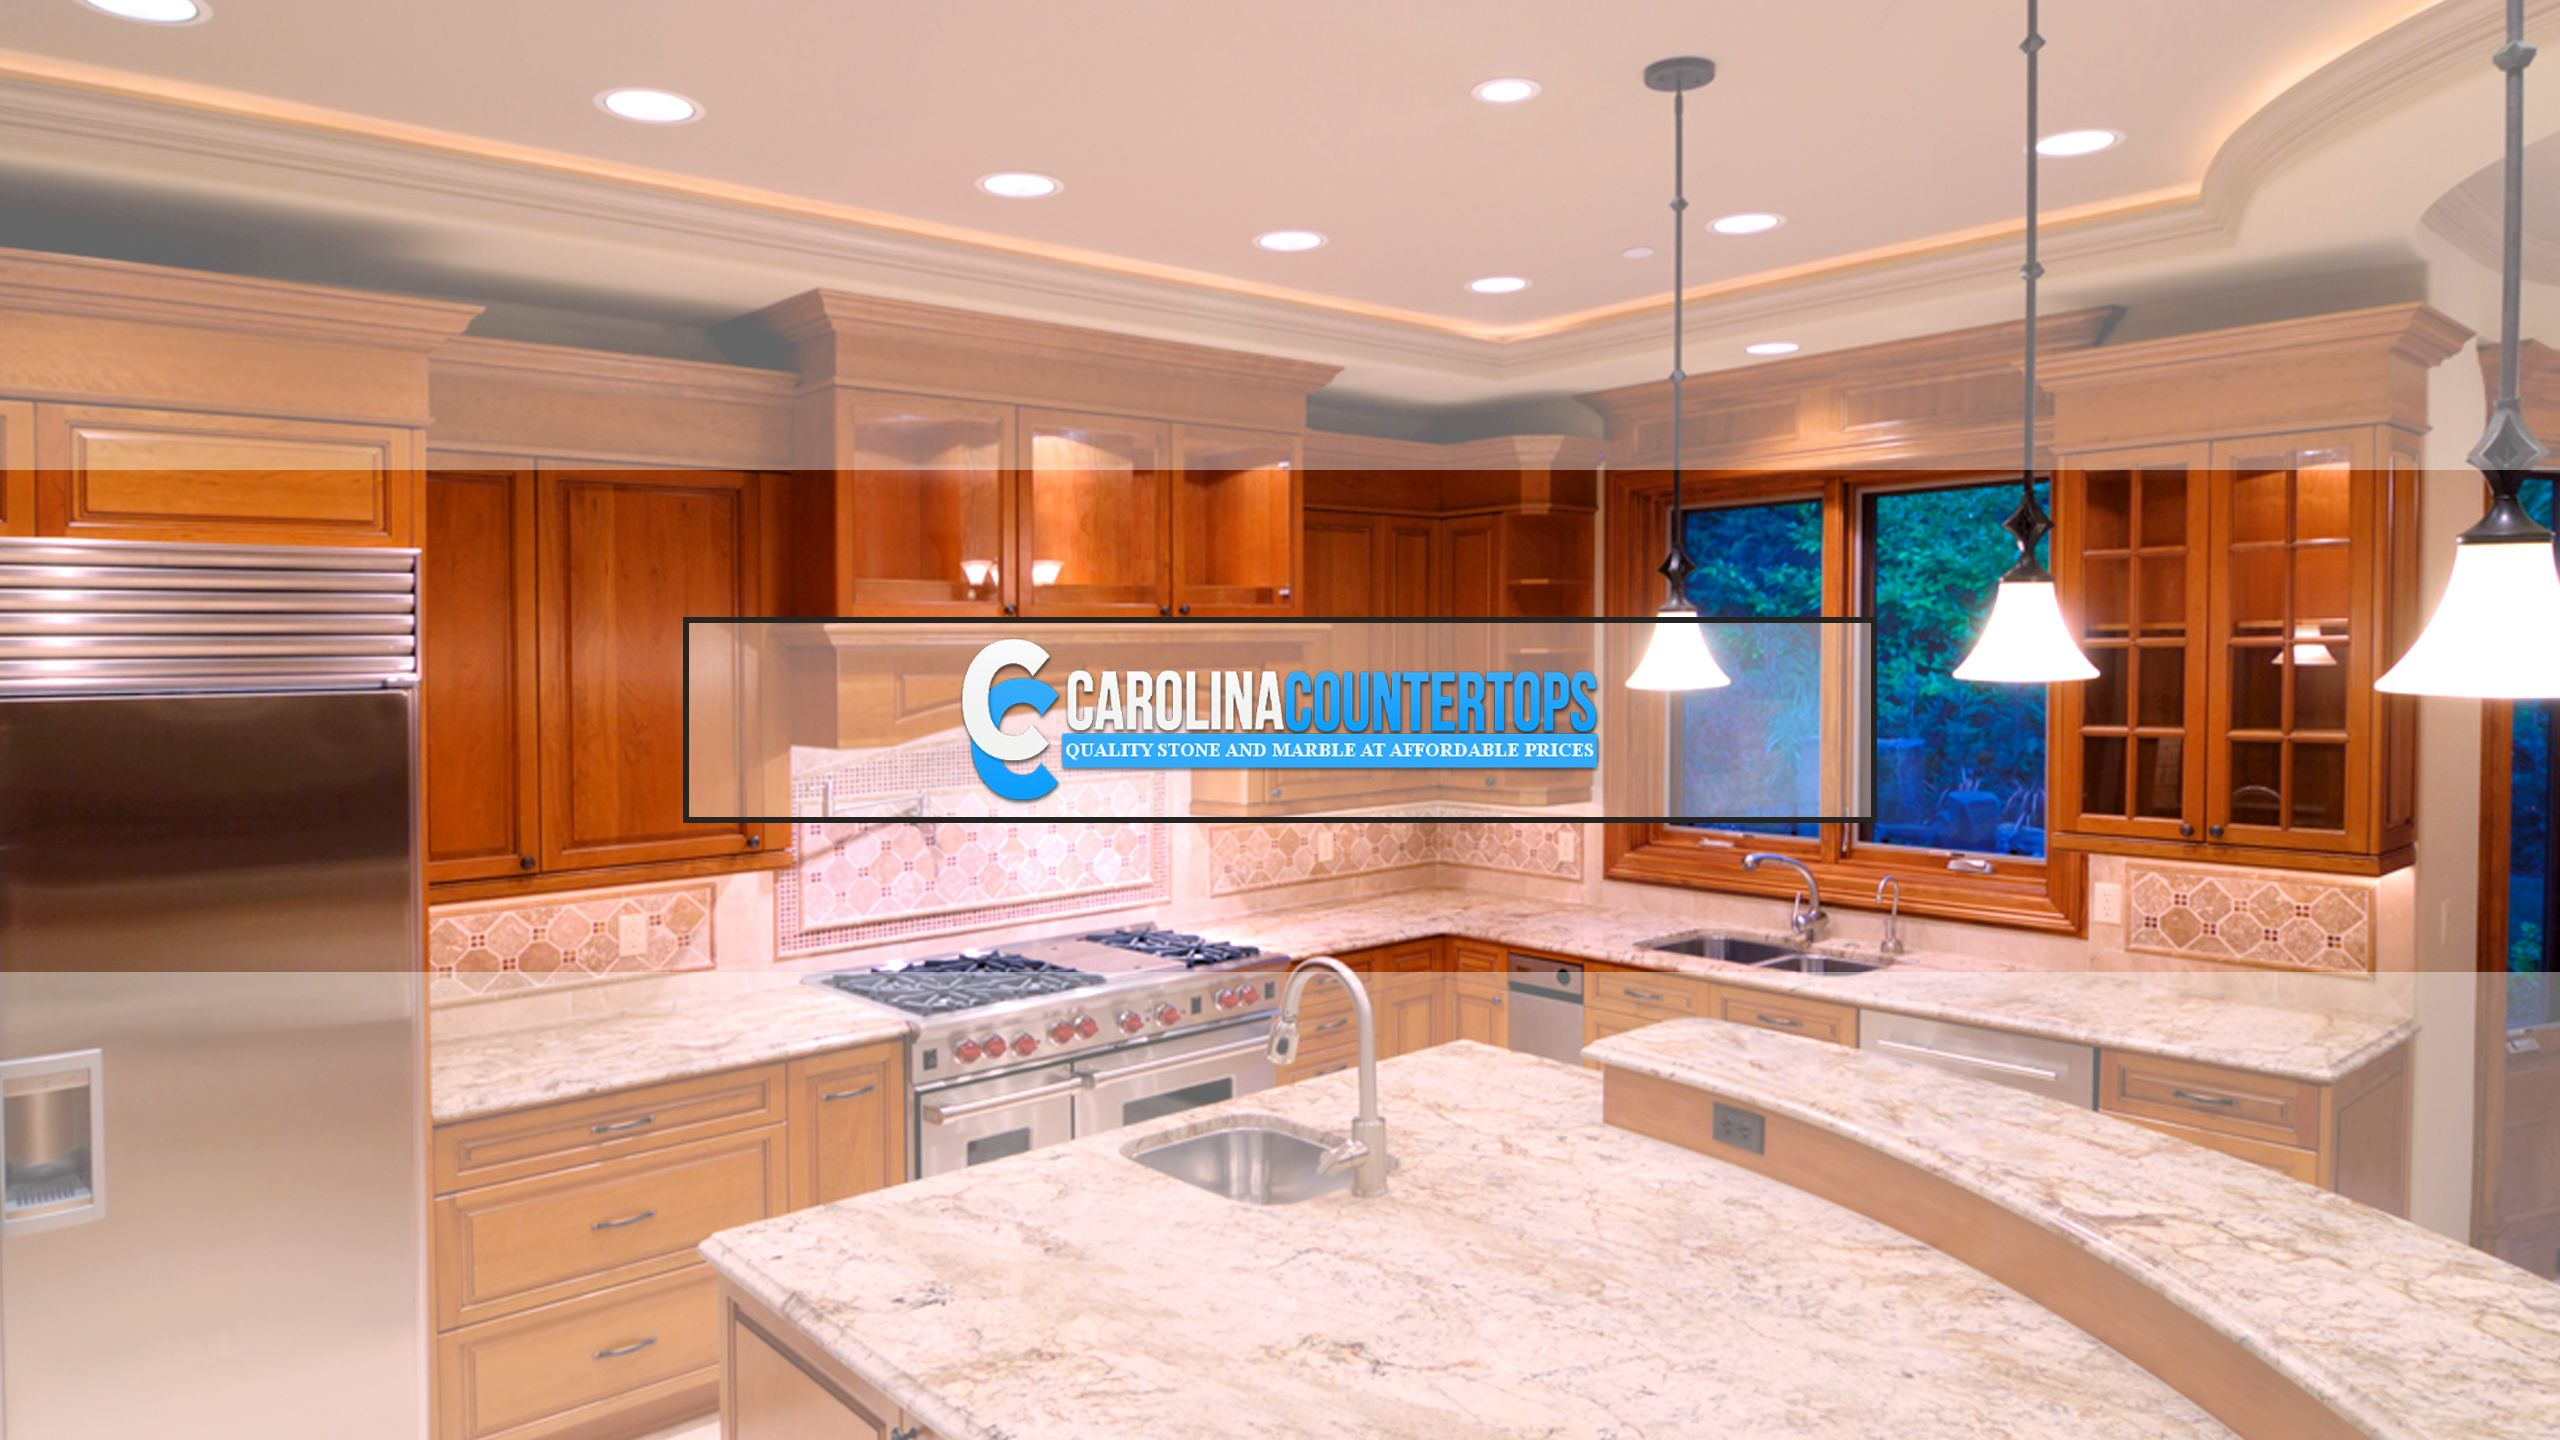 Carolina Countertops Is A Countertop Store In Chapel Hill Nc We